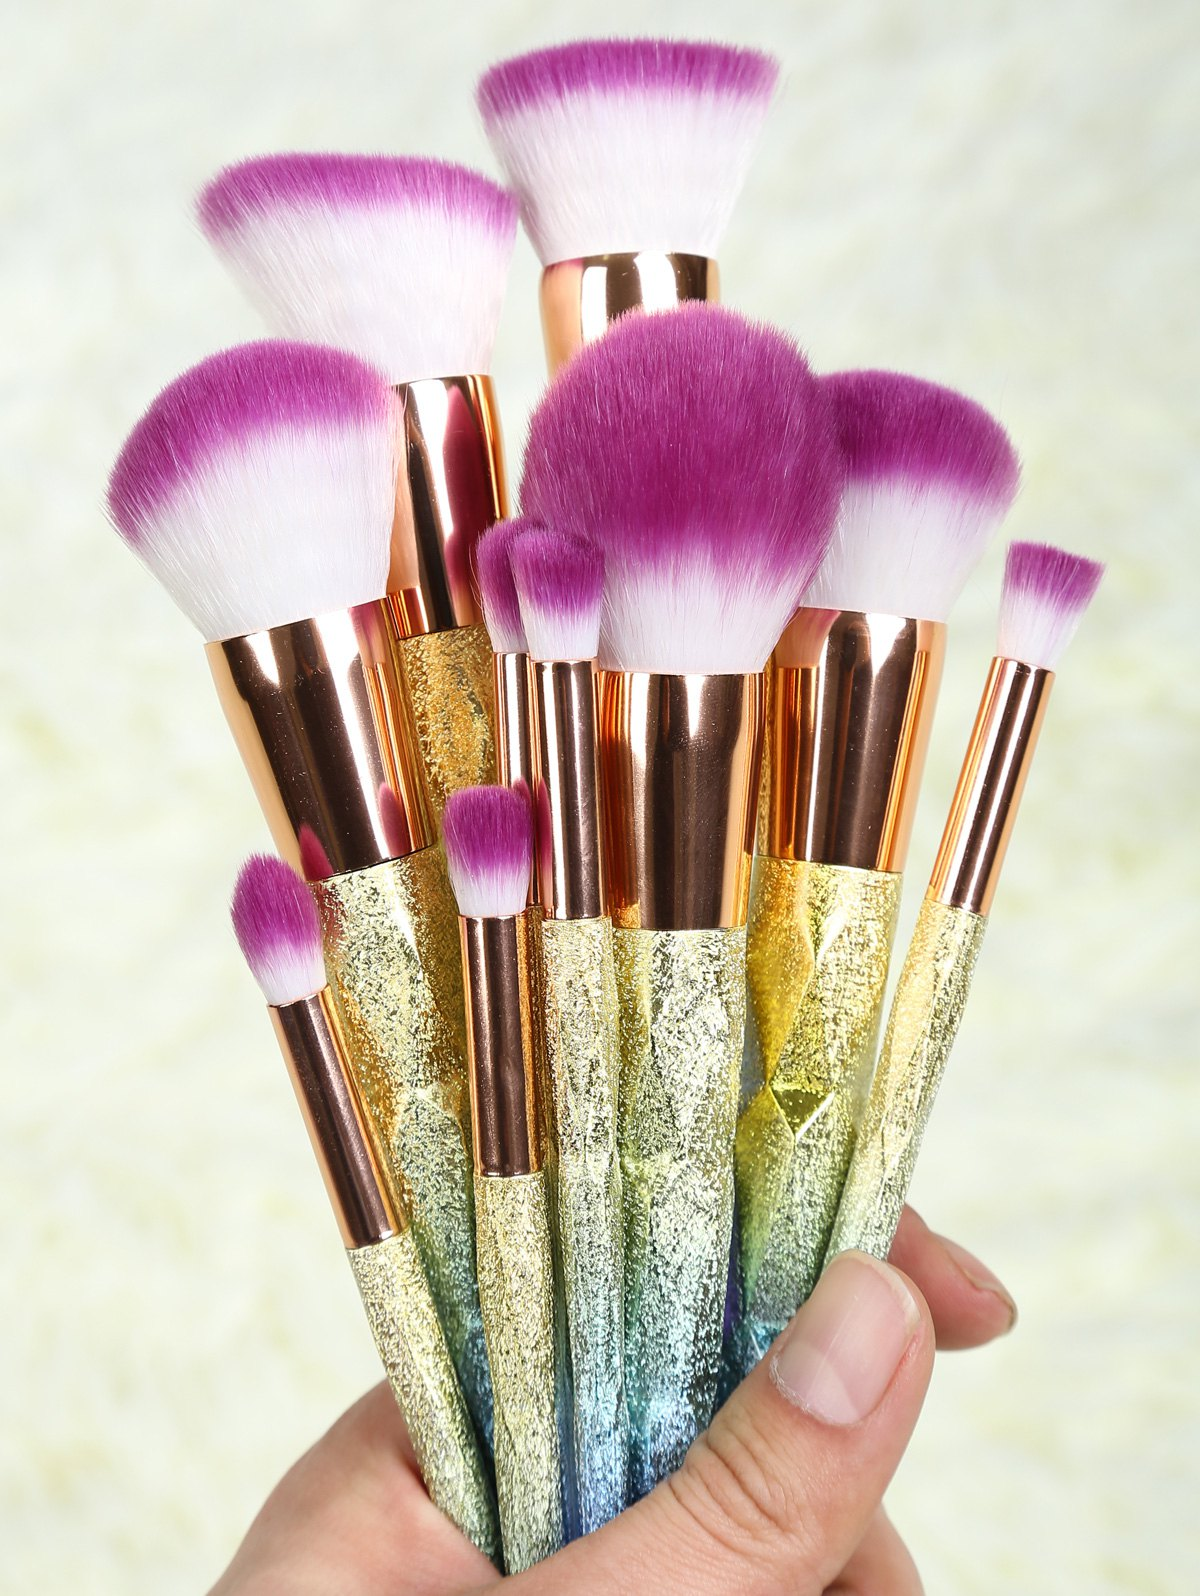 Ombre Glitter Makeup Brushes SetBEAUTY<br><br>Color: ROSE GOLD; Category: Makeup Brushes Set; Brush Hair Material: Synthetic Hair; Features: Professional; Season: Fall,Spring,Summer,Winter; Length: 20.5cm; Weight: 0.211kg; Package Contents: 10 x Brushes (Pcs);